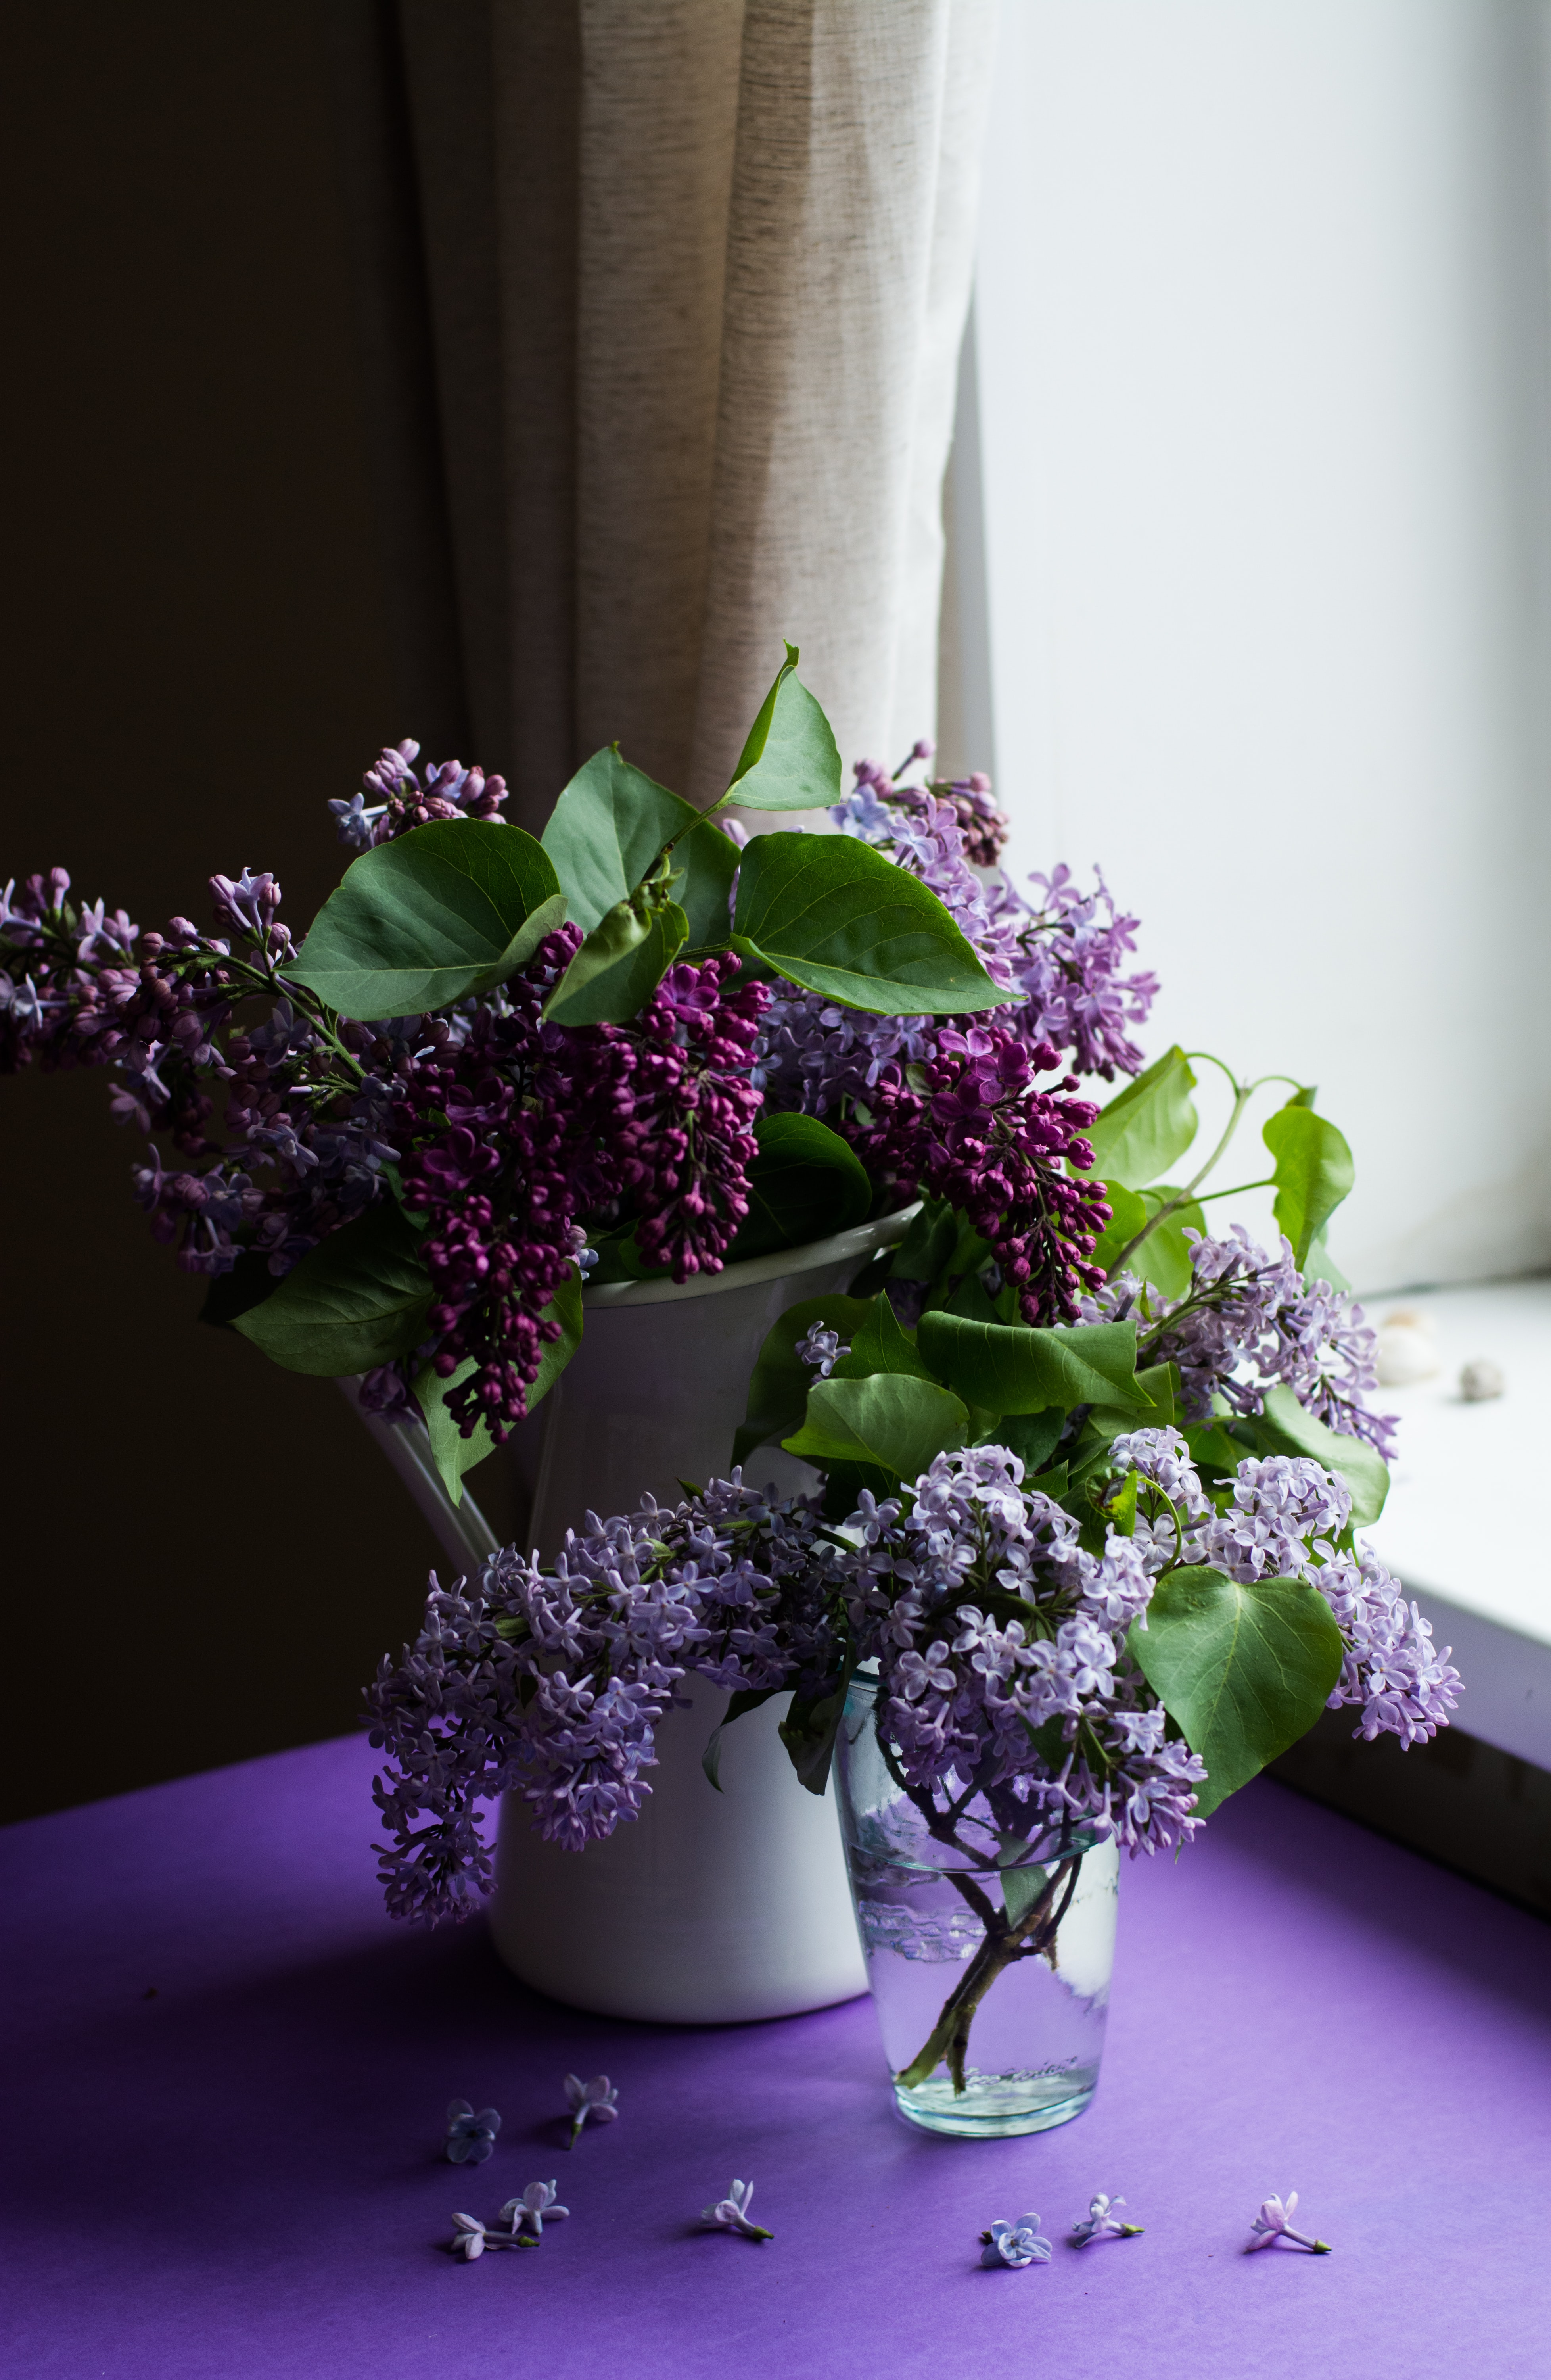 purple flower with green leafed on table